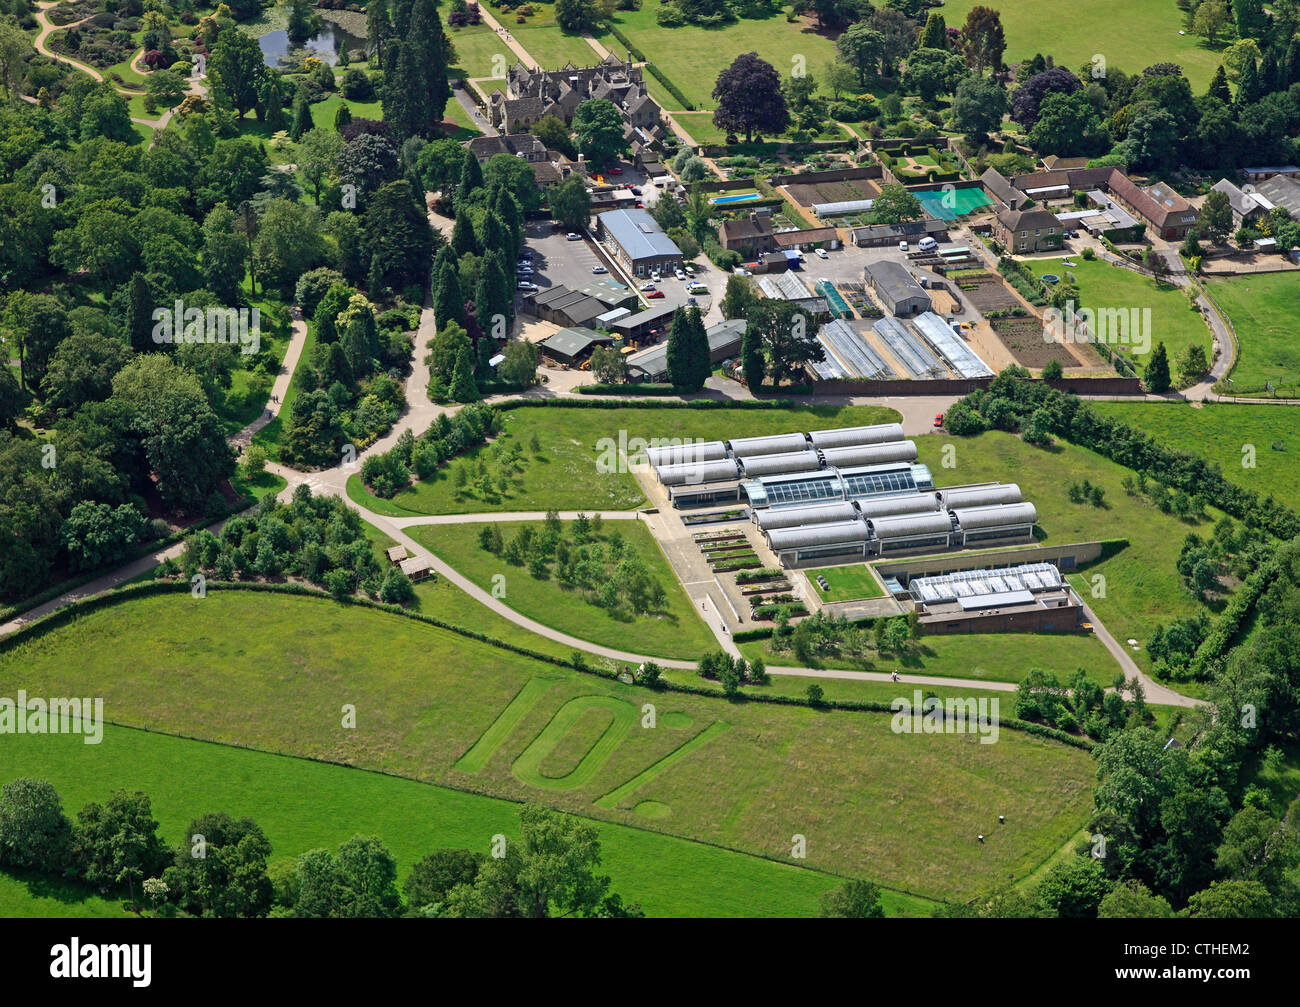 aerial view of the Millennium Seedbank at Wakehurst Place, Sussex - Stock Image